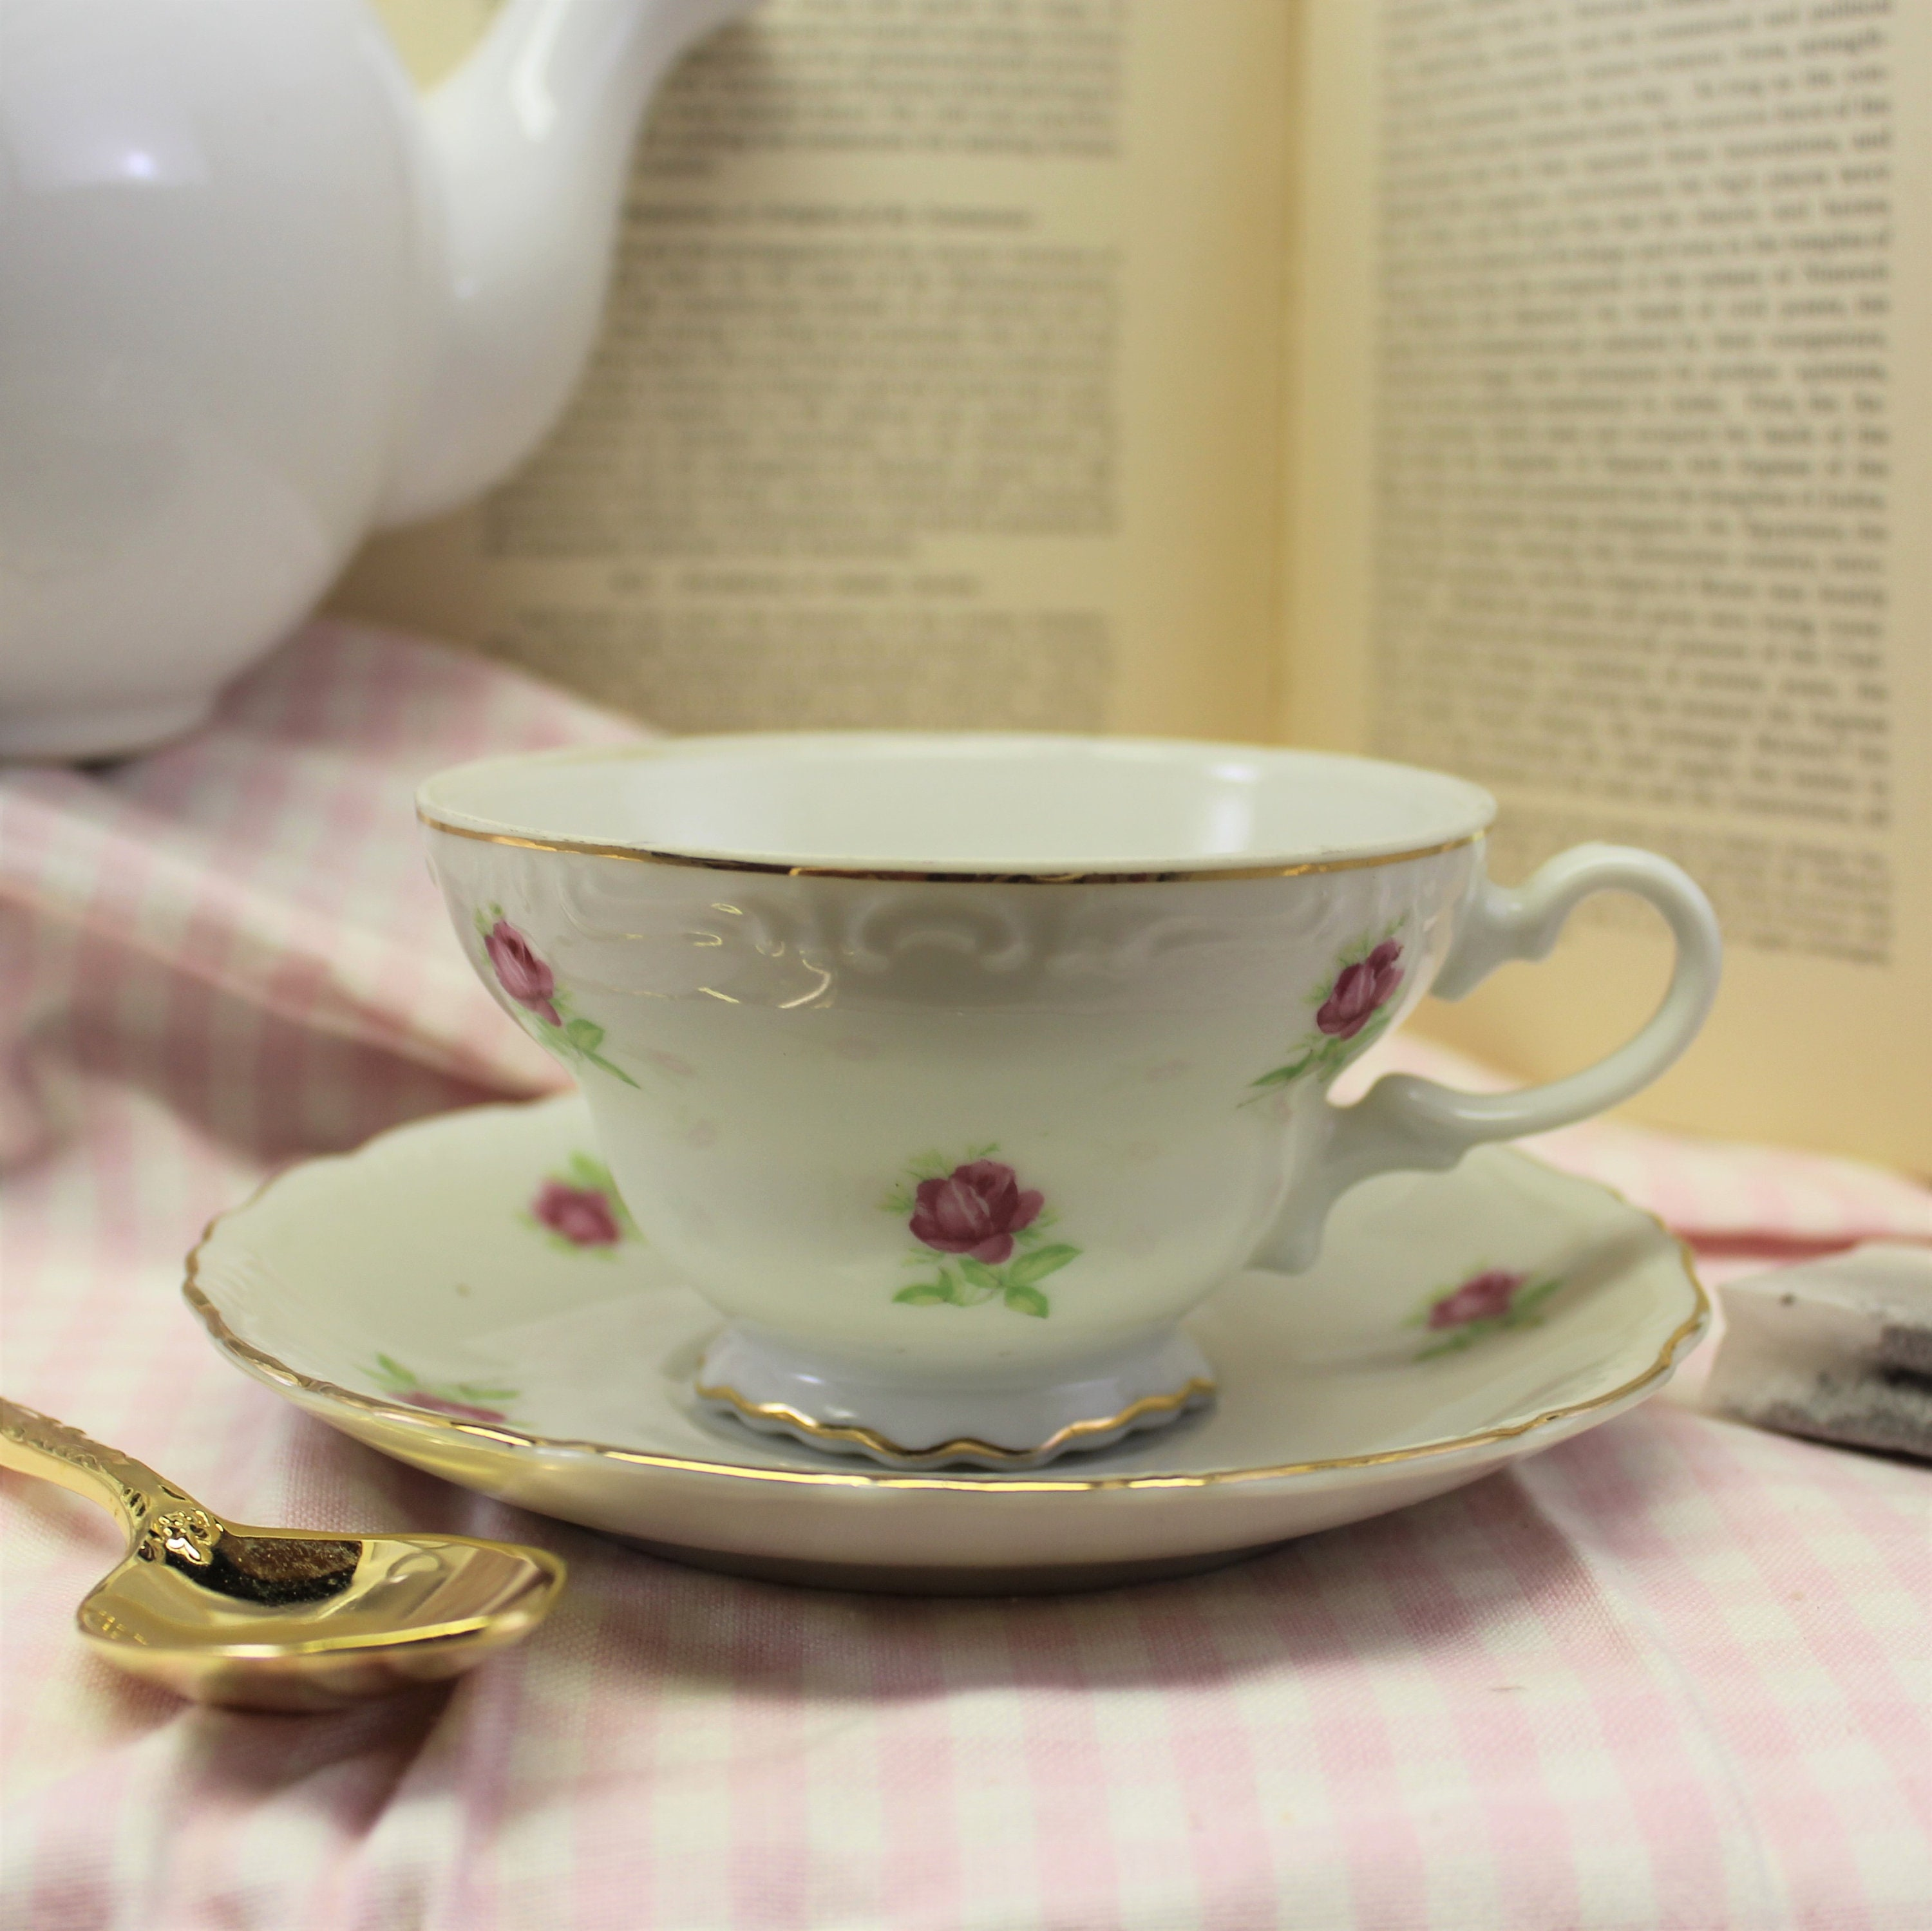 footed white and pink tea cup with matching saucer gold trim perfect for bridal shower favor candle tea party no hallmark